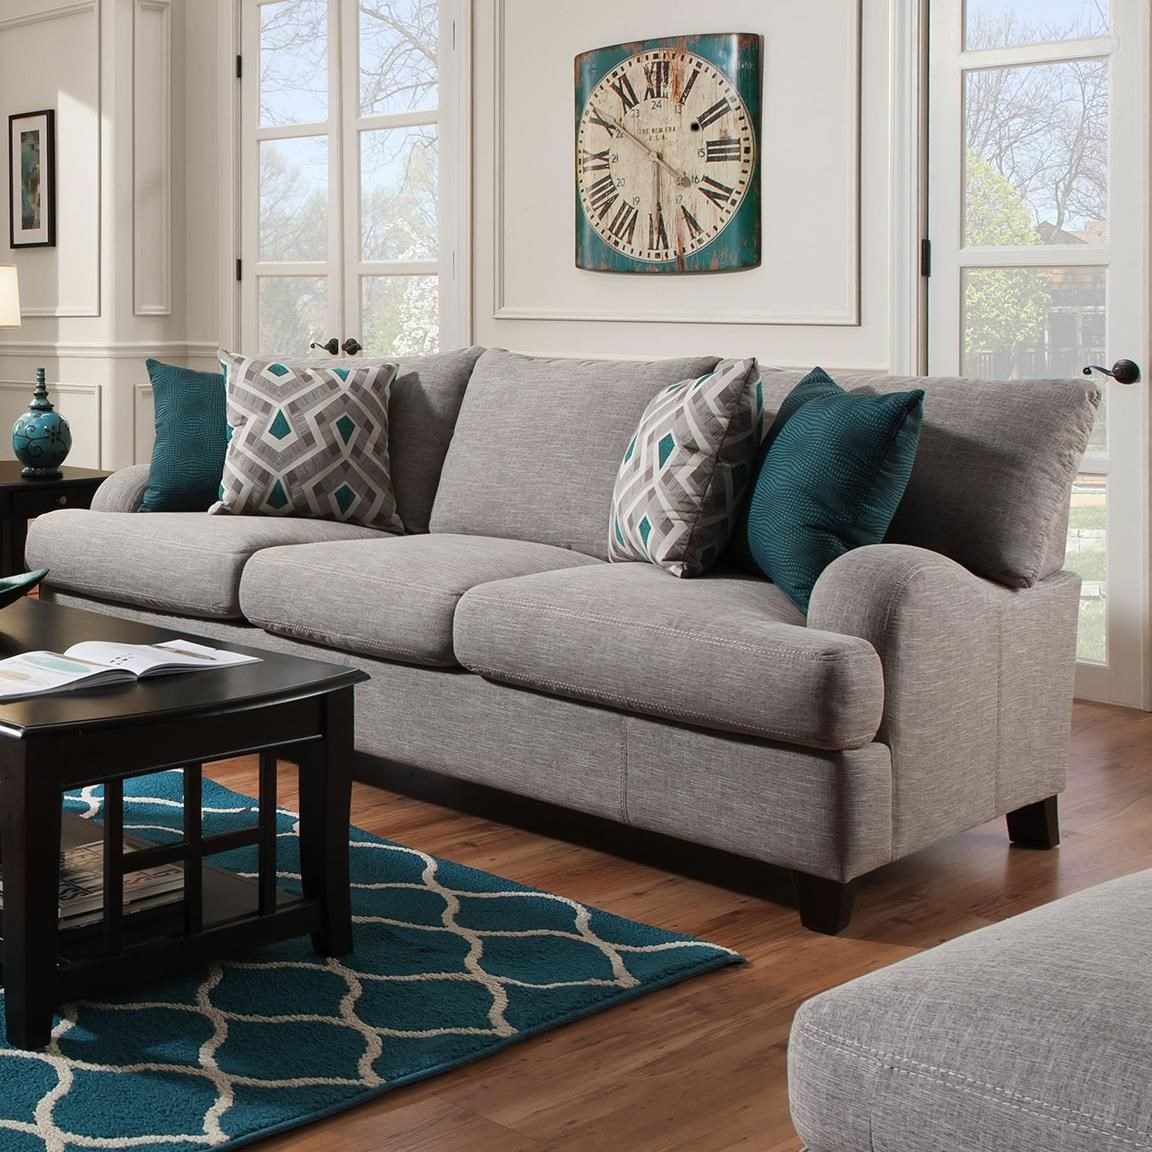 Charmant Franklin Paradigm Sofa With Bold Accent Pillows